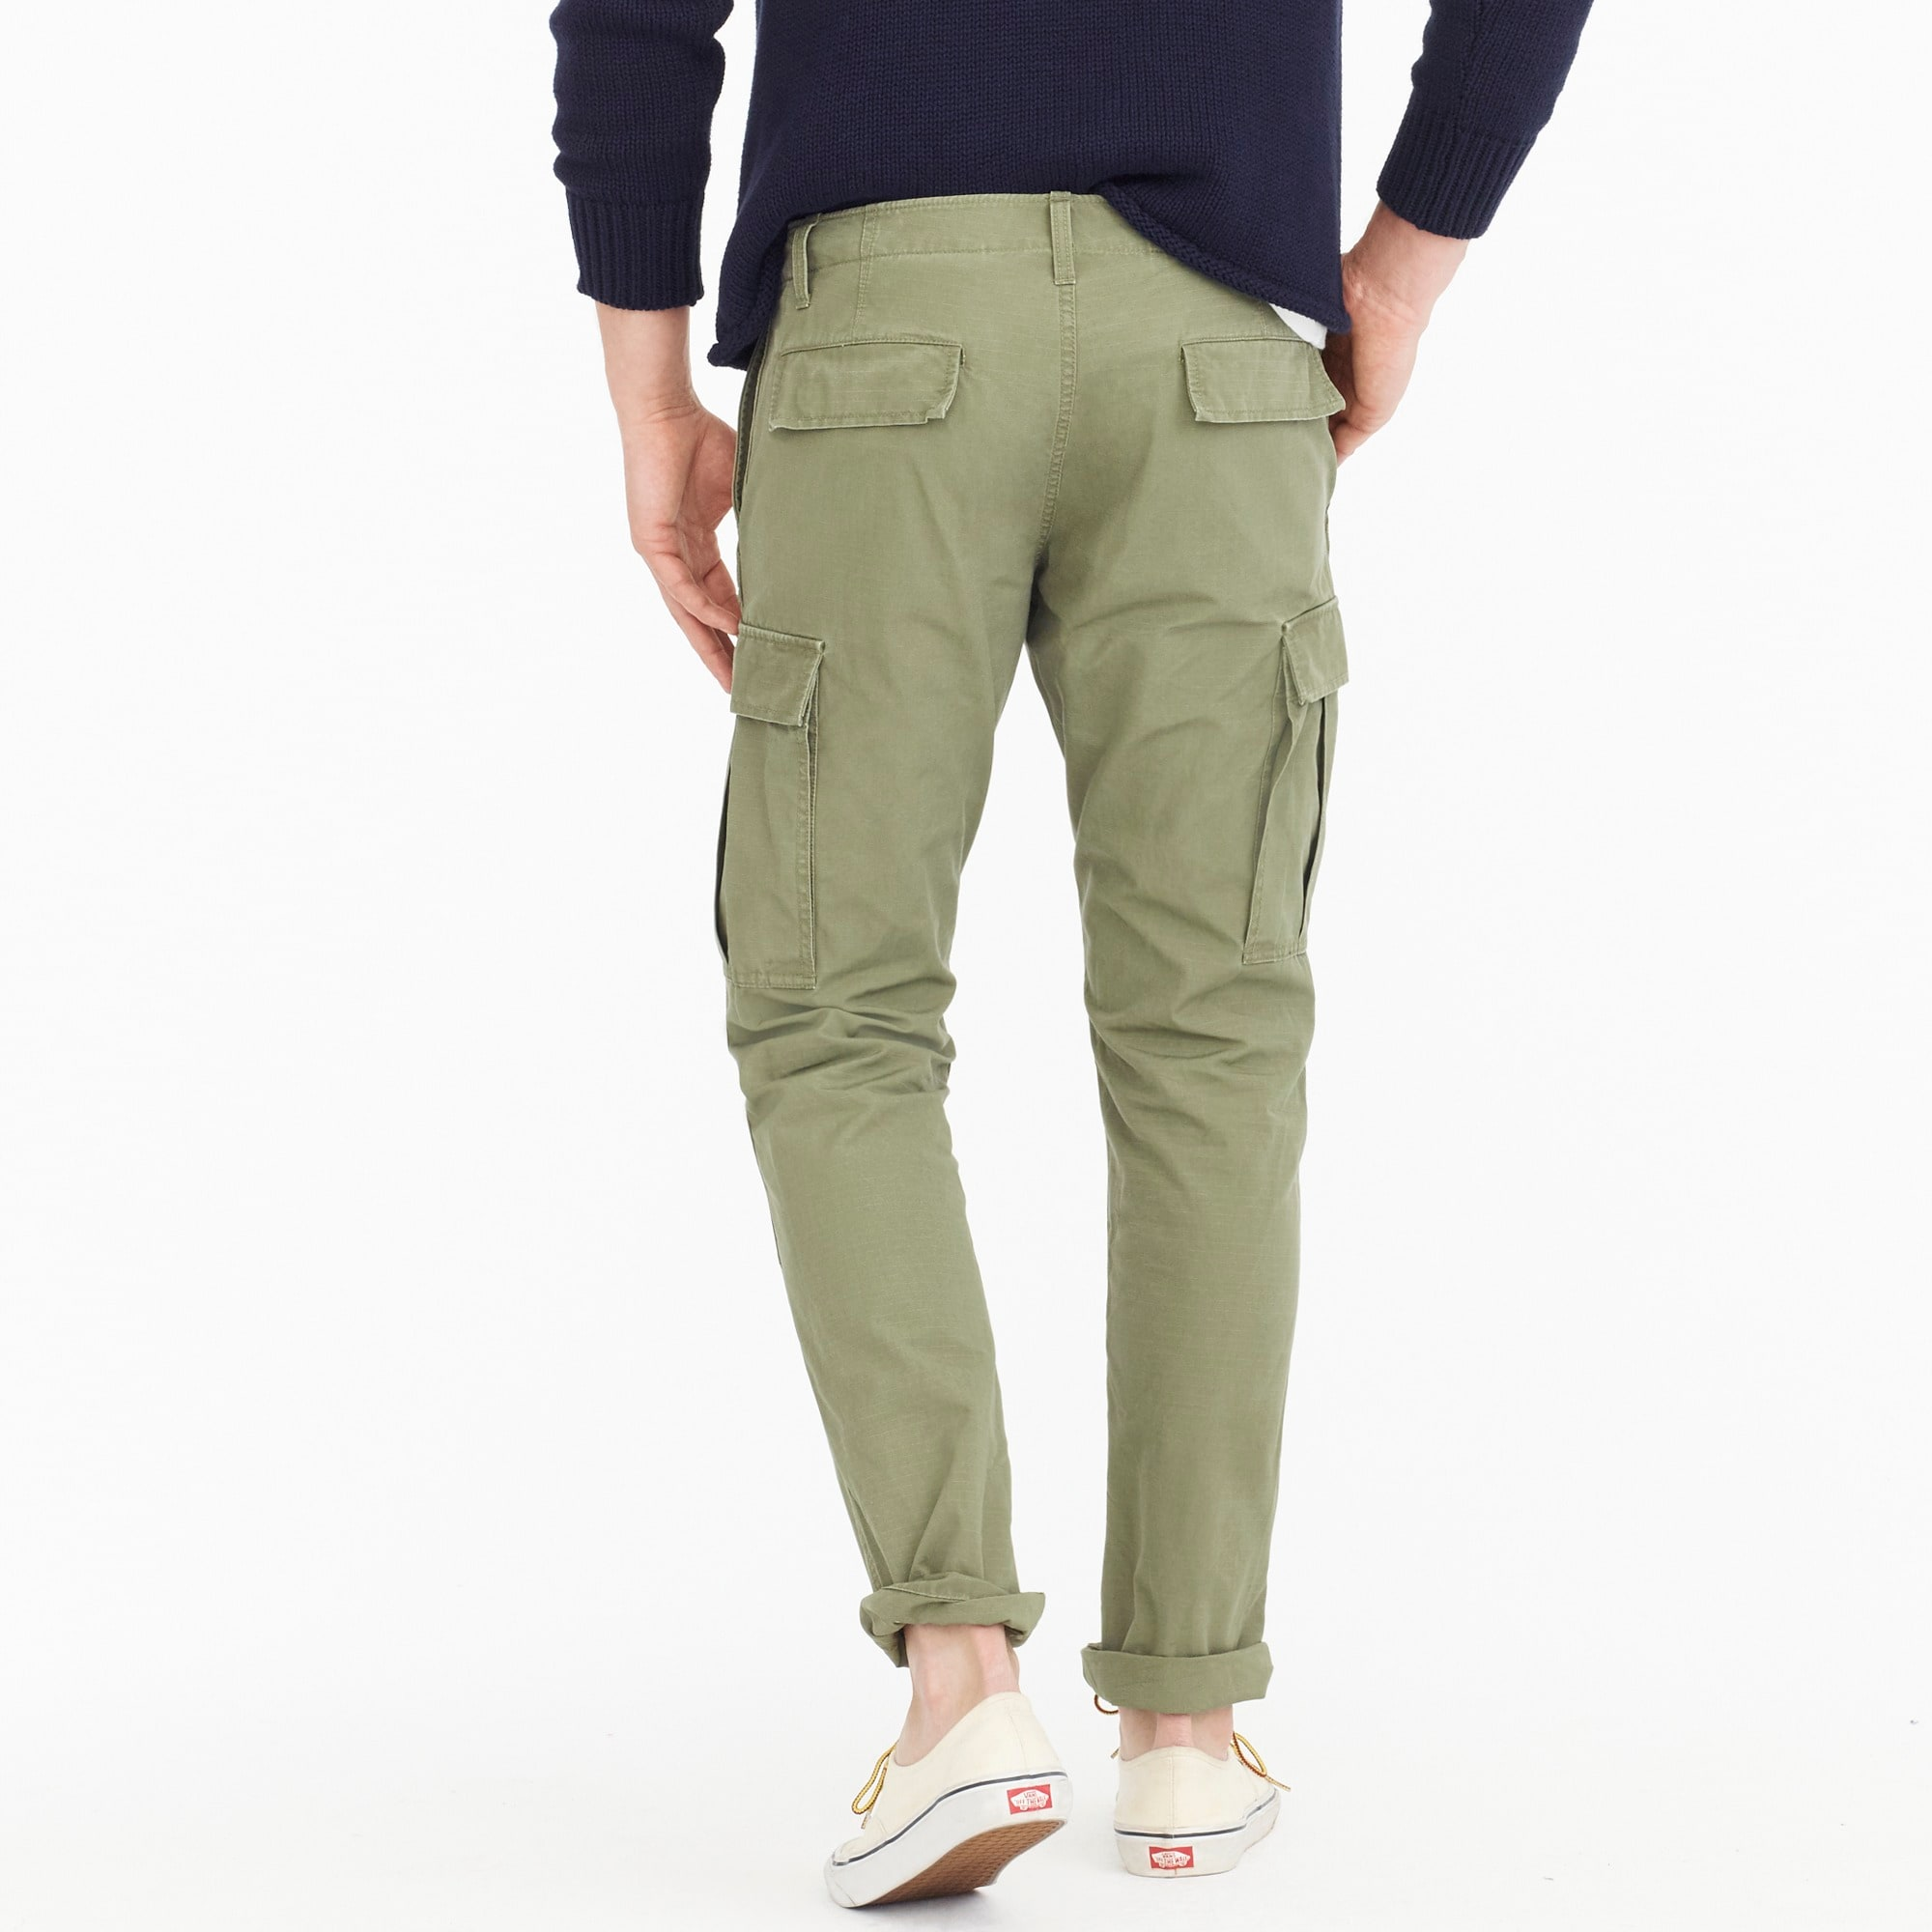 770 Straight-fit ripstop cargo pant in brigade olive